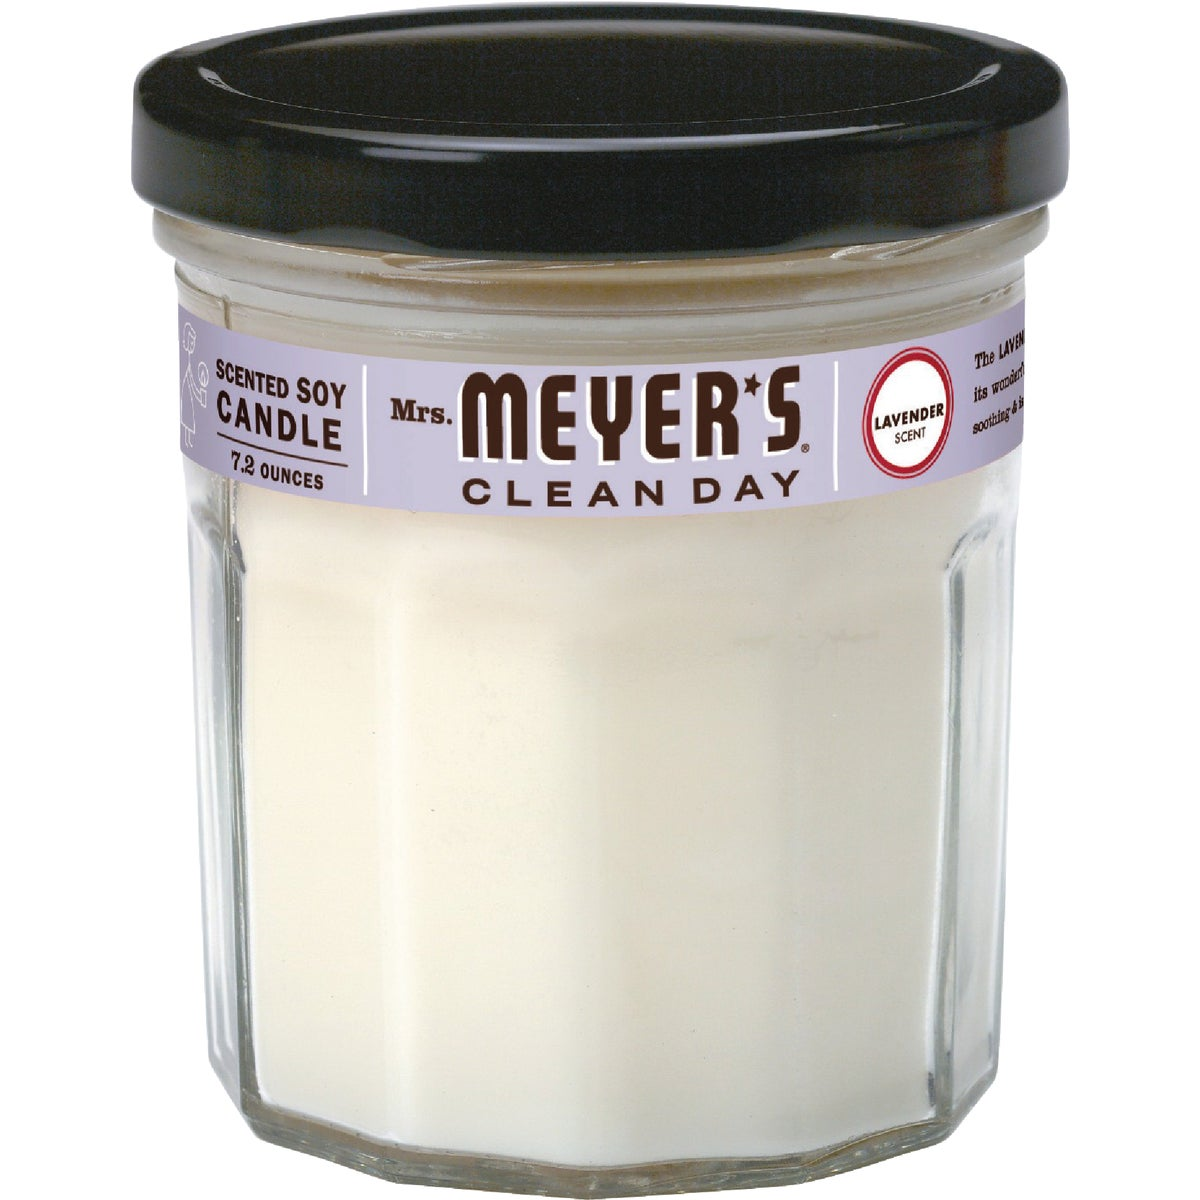 7.2OZ LAVNDR SOY CANDLE - 41116 by Mrs Meyers Clean Day